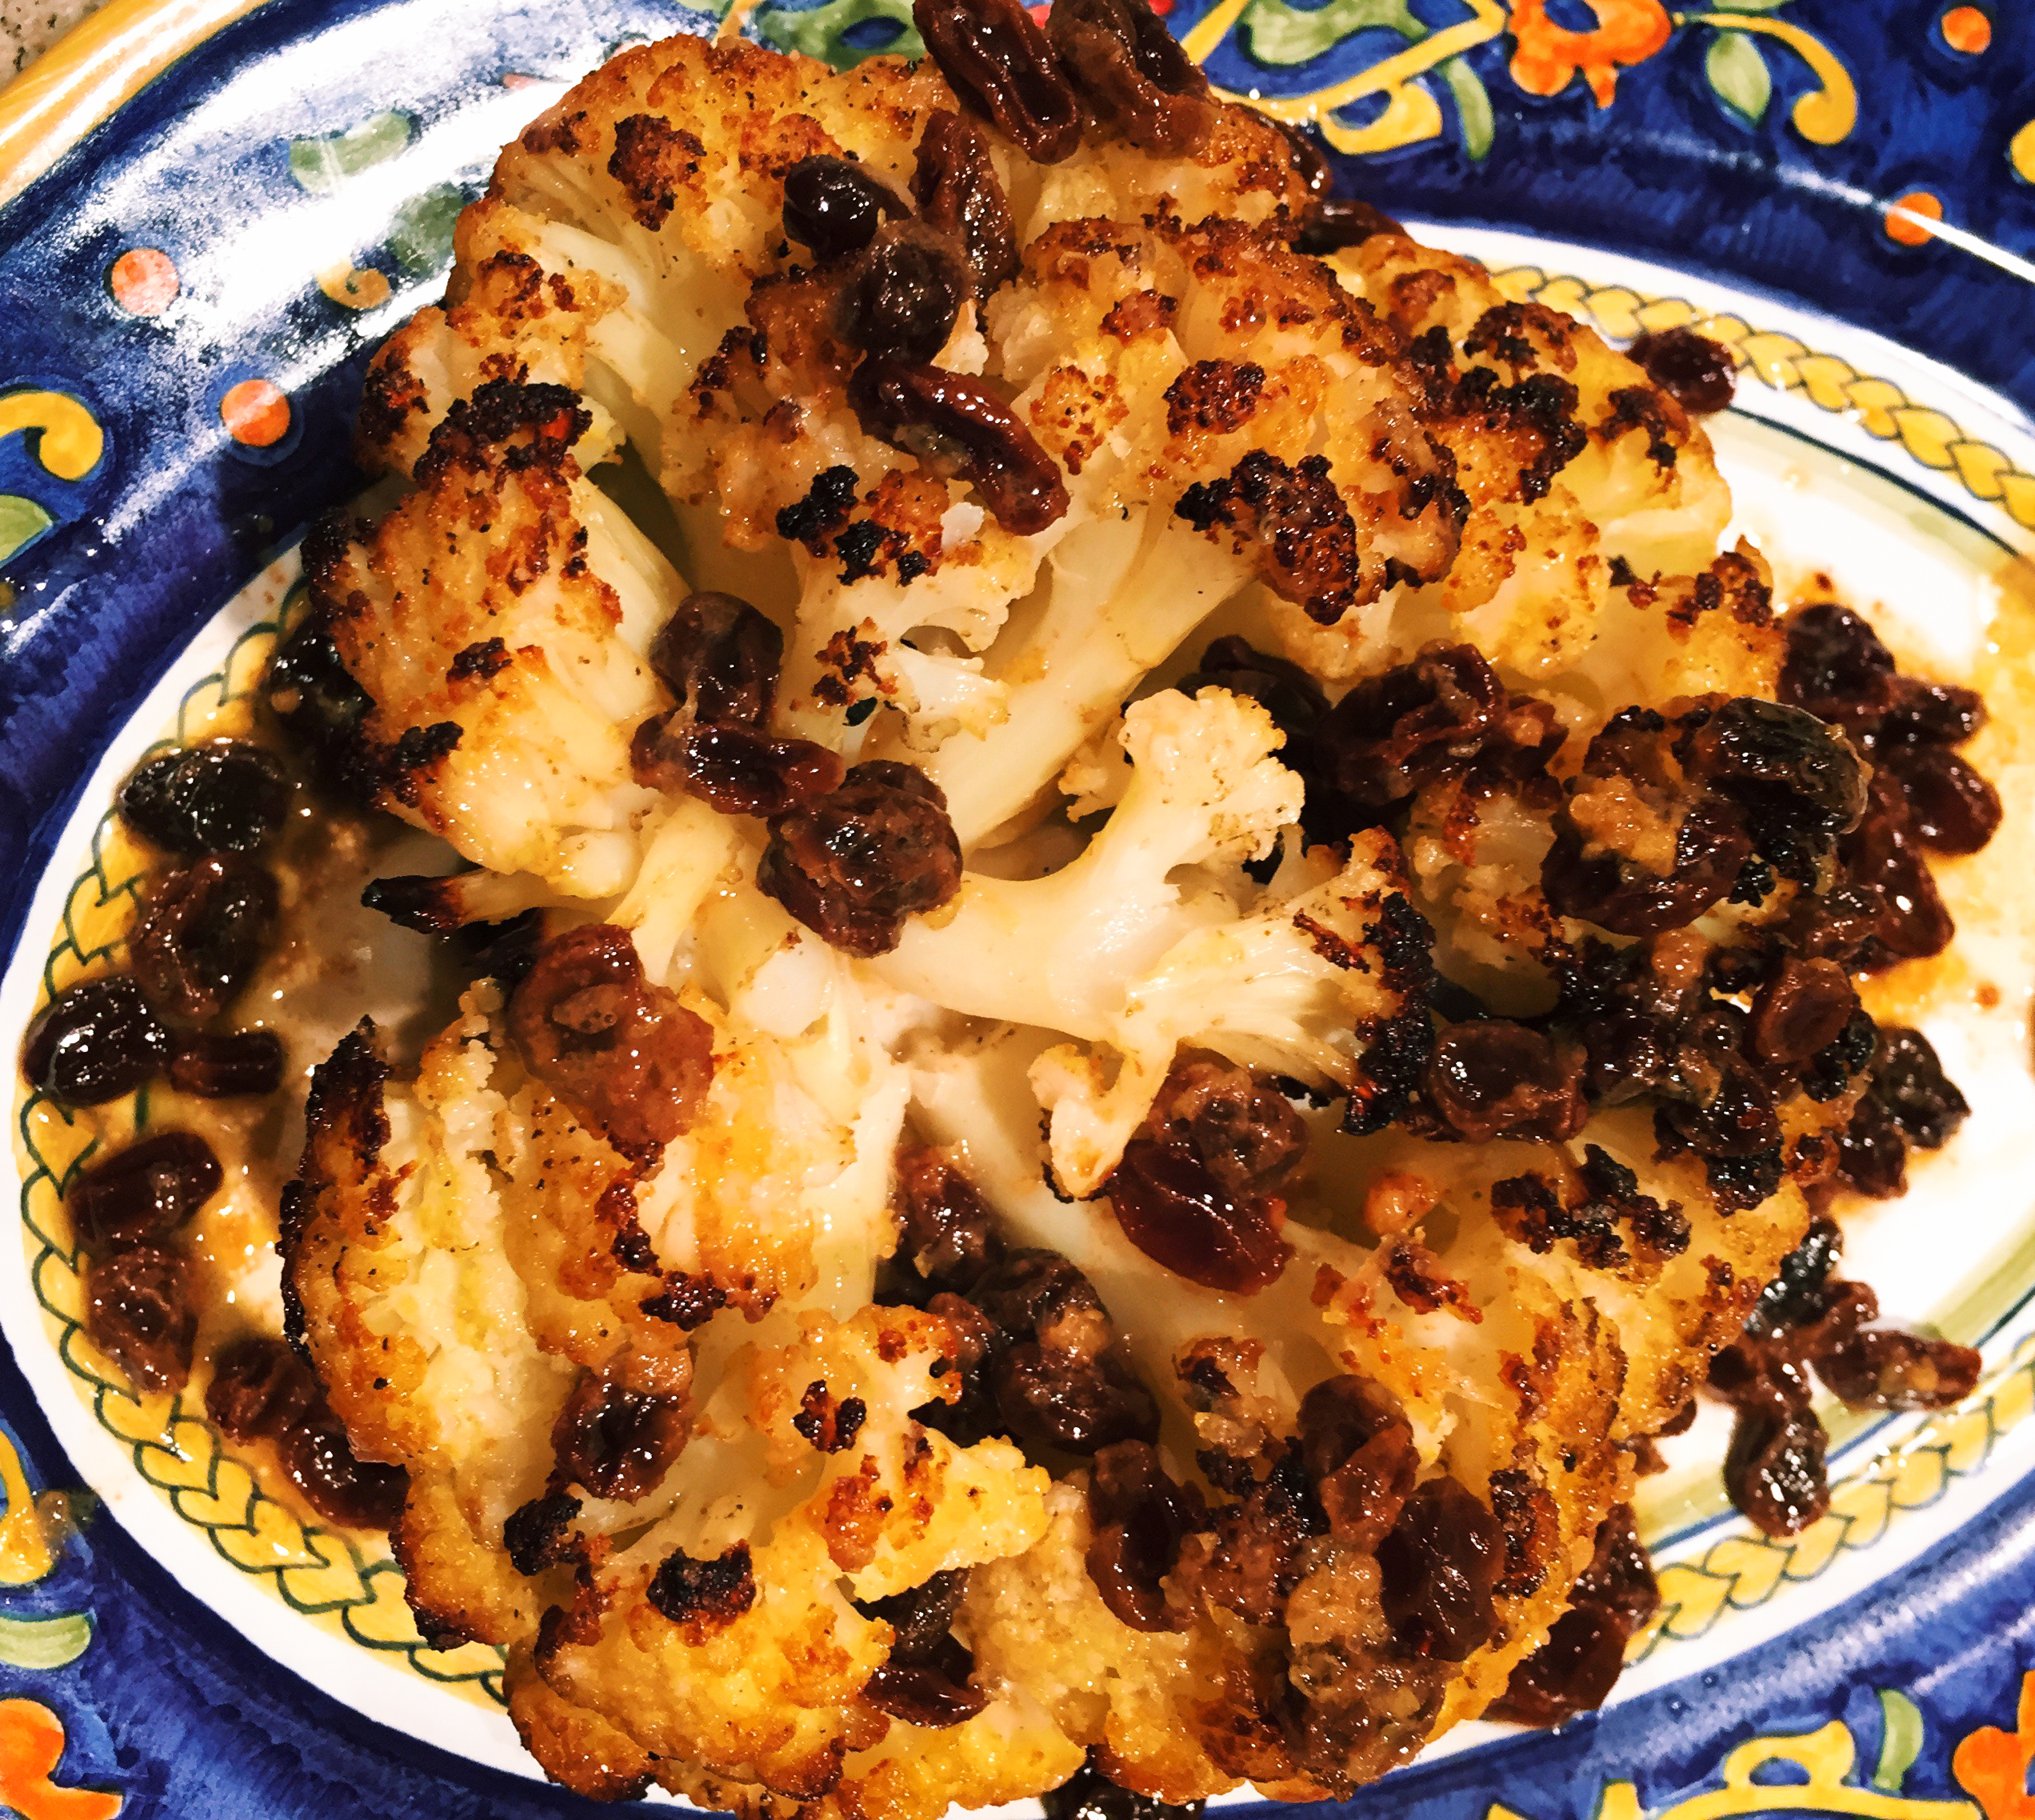 ... brown butter recipe yummly roasted cauliflower with brown butter